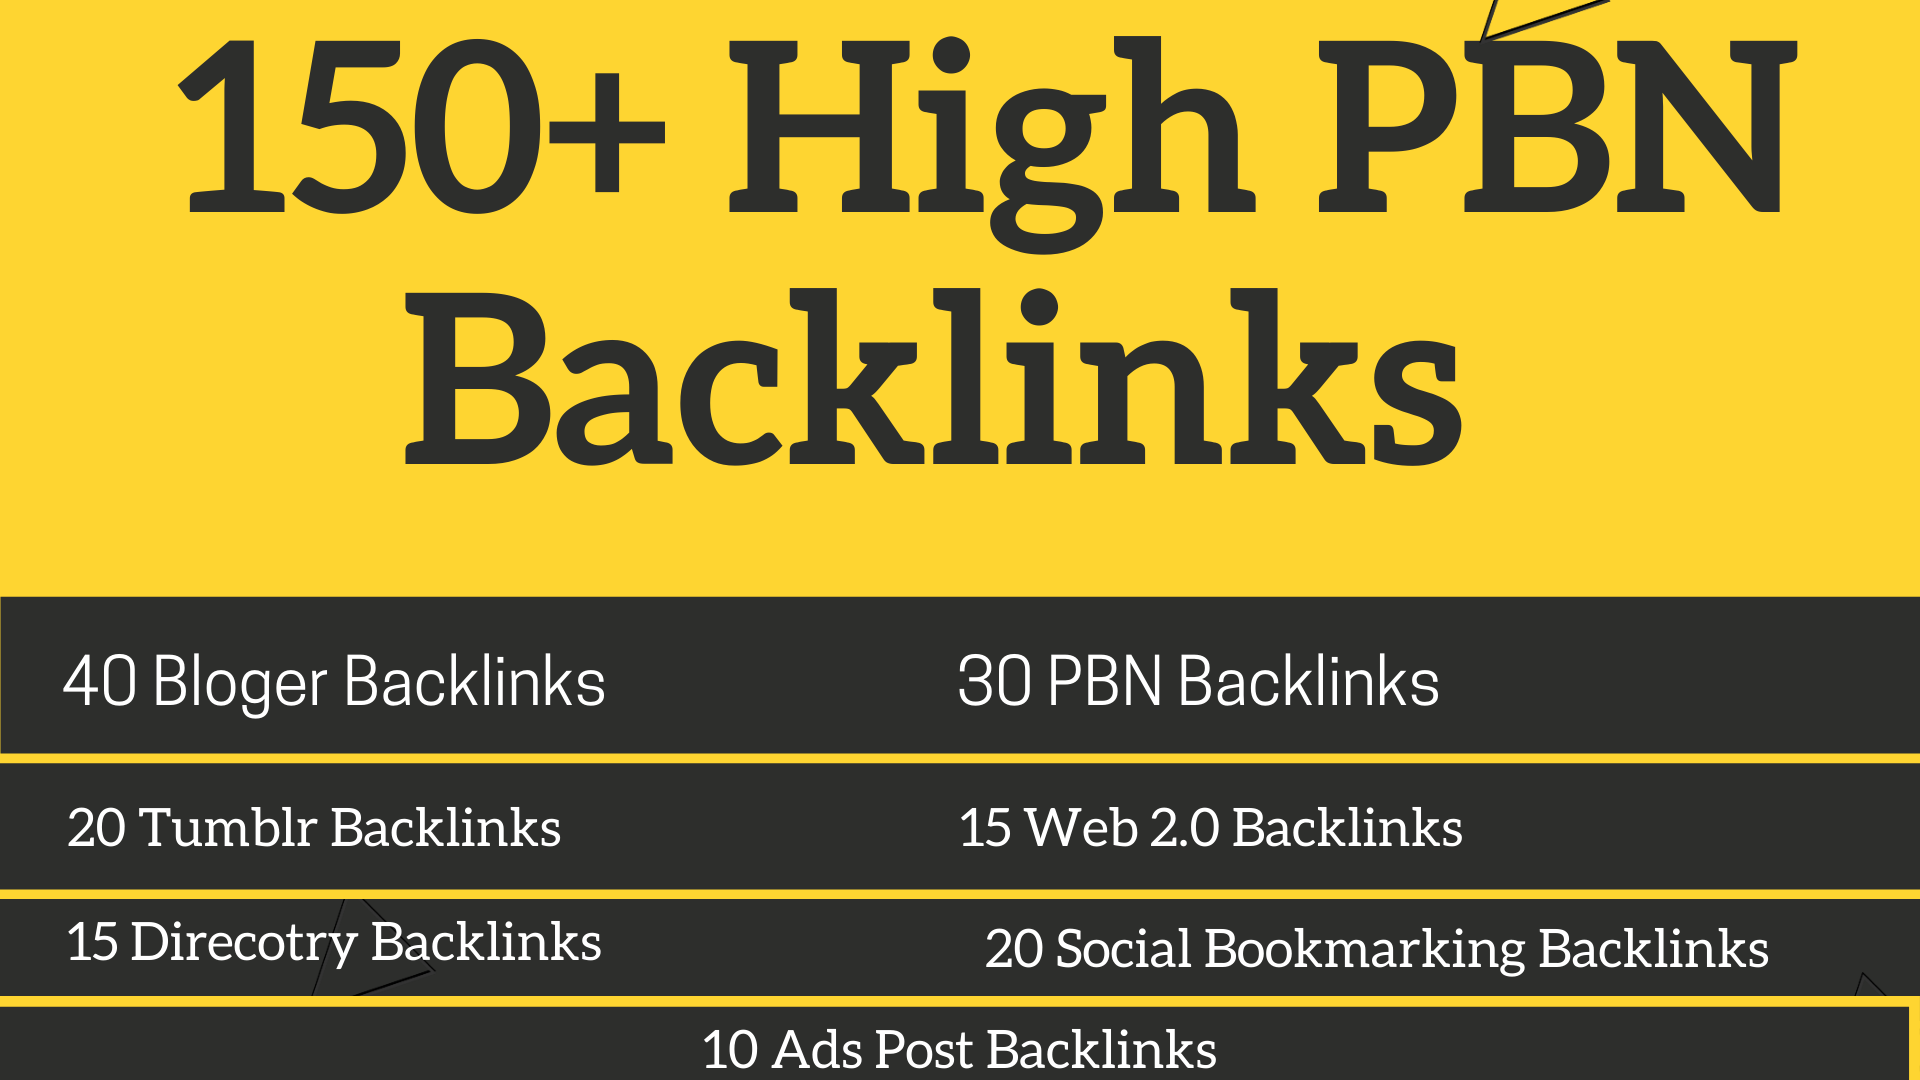 Boost Google 1st page 150+ High PBN Backlinks